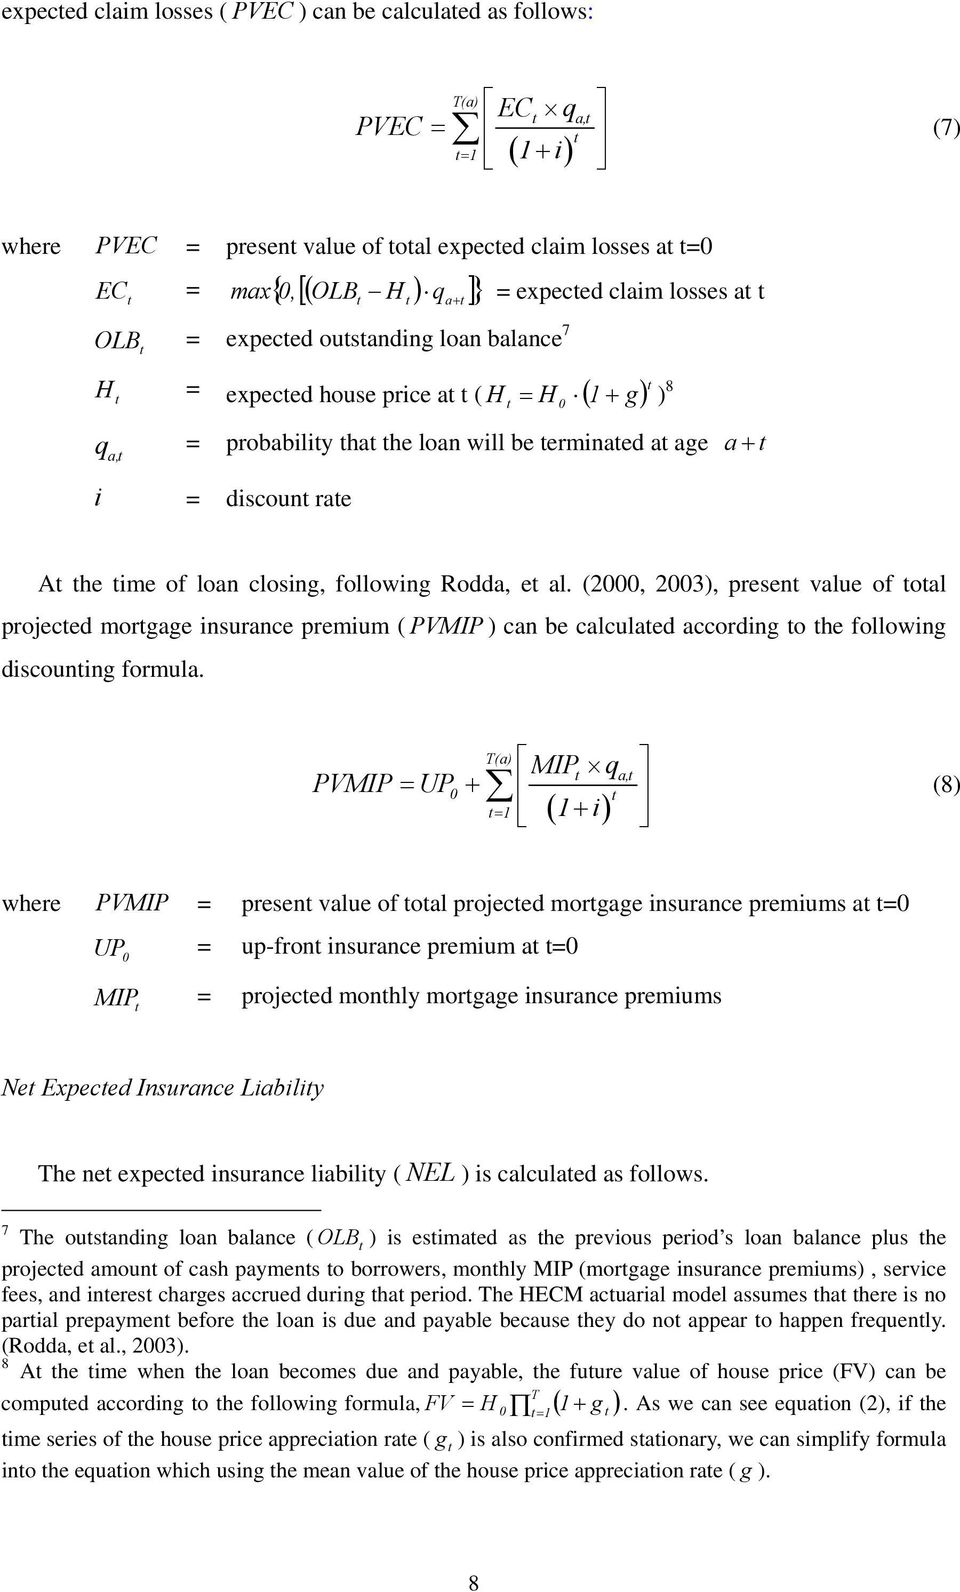 closing, following Rodda, e al. (2000, 2003), presen value of oal projeced morgage insurance premium ( PVMIP ) can be calculaed according o he following discouning formula.